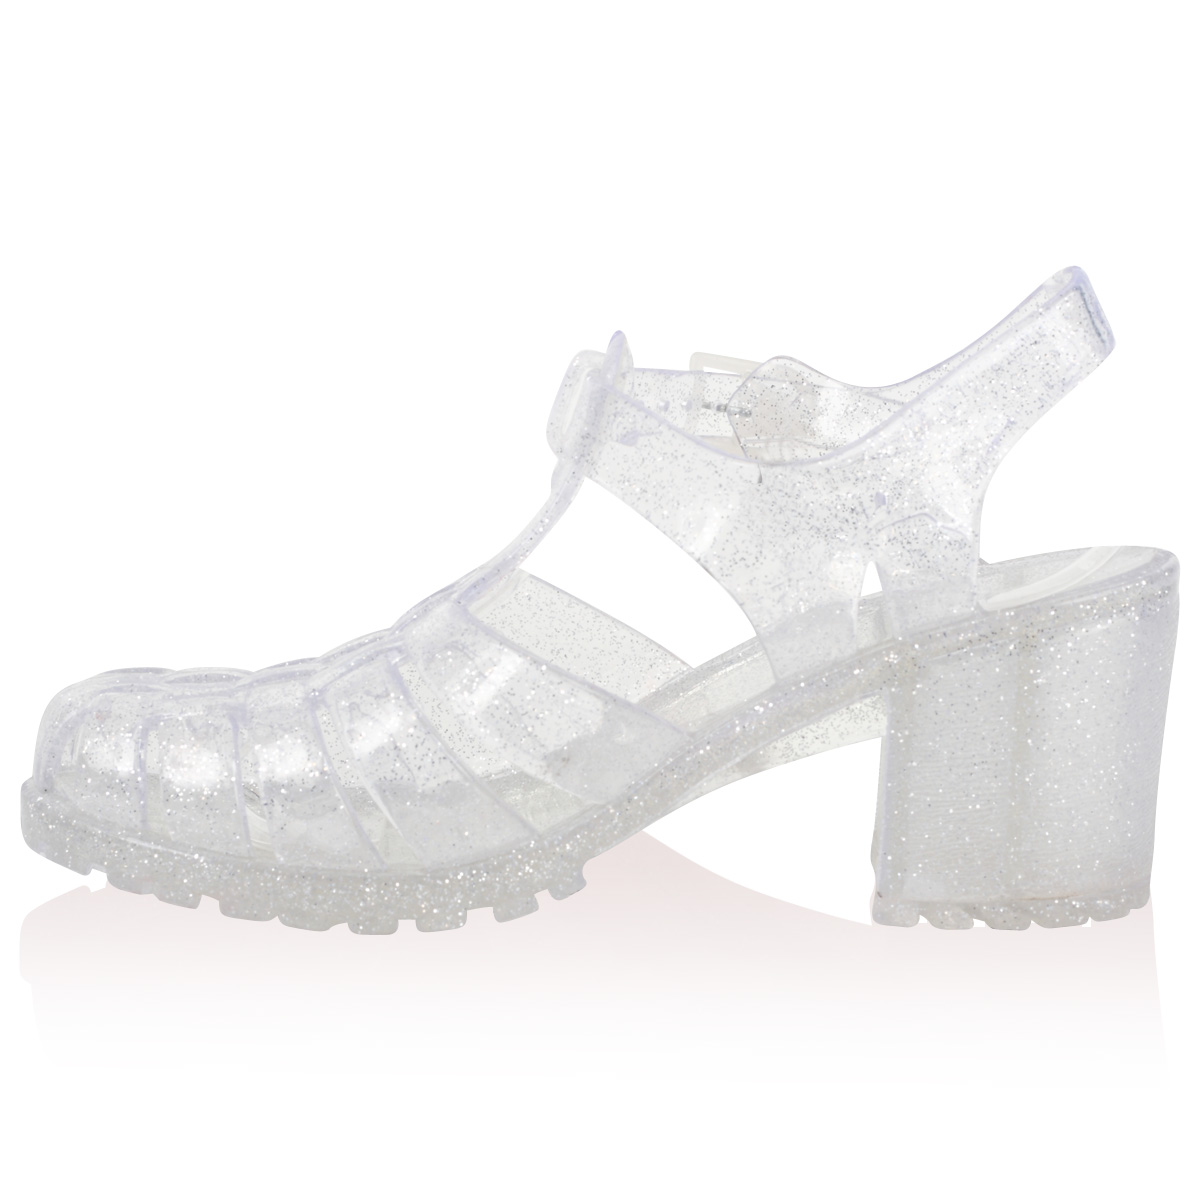 WOMENS CLEAR GLITTER HEEL LADIES SUMMER CUT OUT SANDALS JELLY SHOES